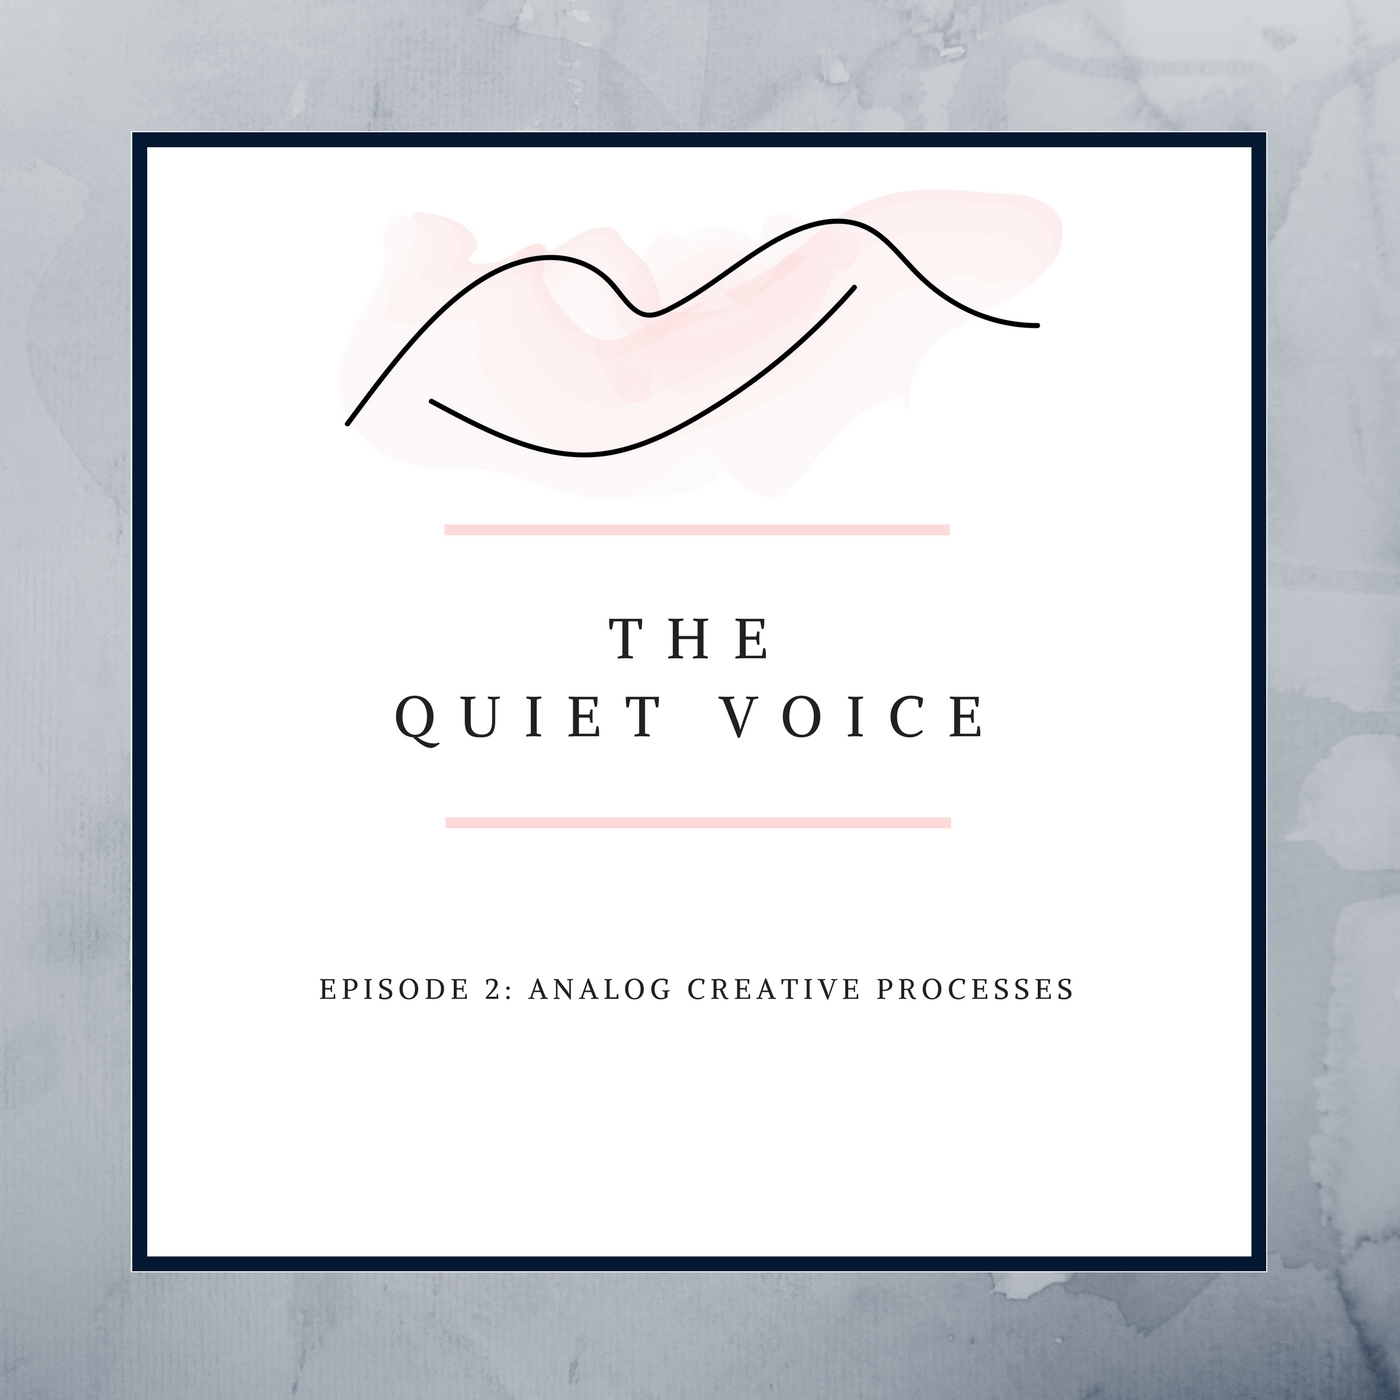 The Quiet Voice Podcast Episode 2 - Analog Creative Processes